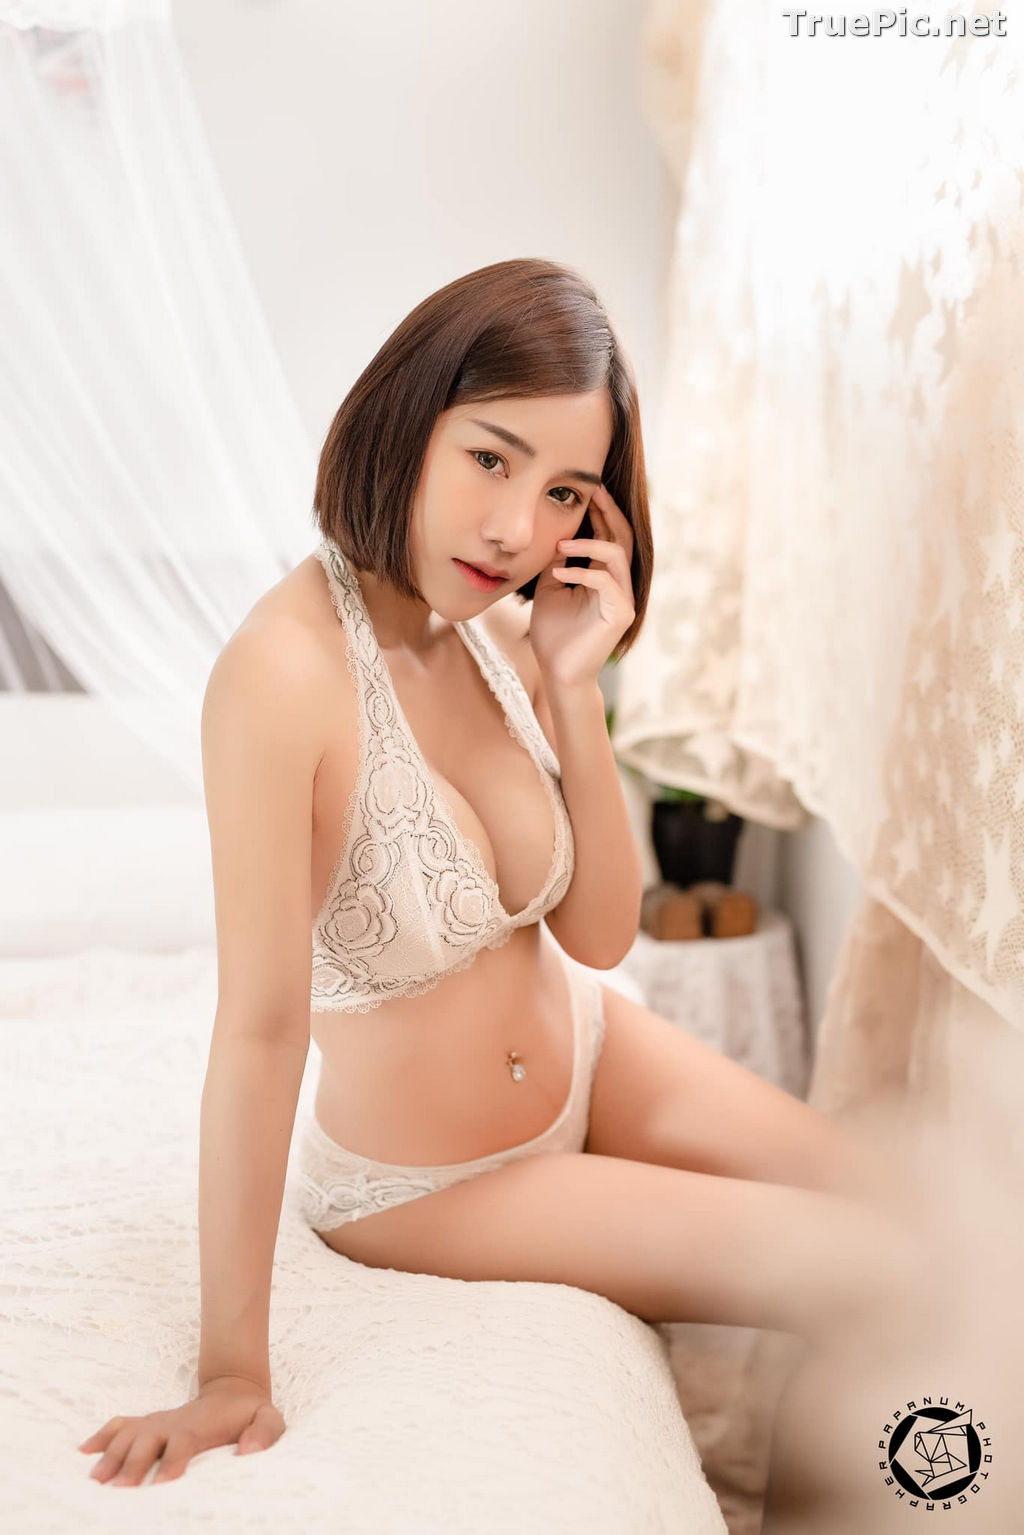 Image Thailand Model - Papoy Kuanpradit - Sexy White Lingerie - TruePic.net - Picture-7